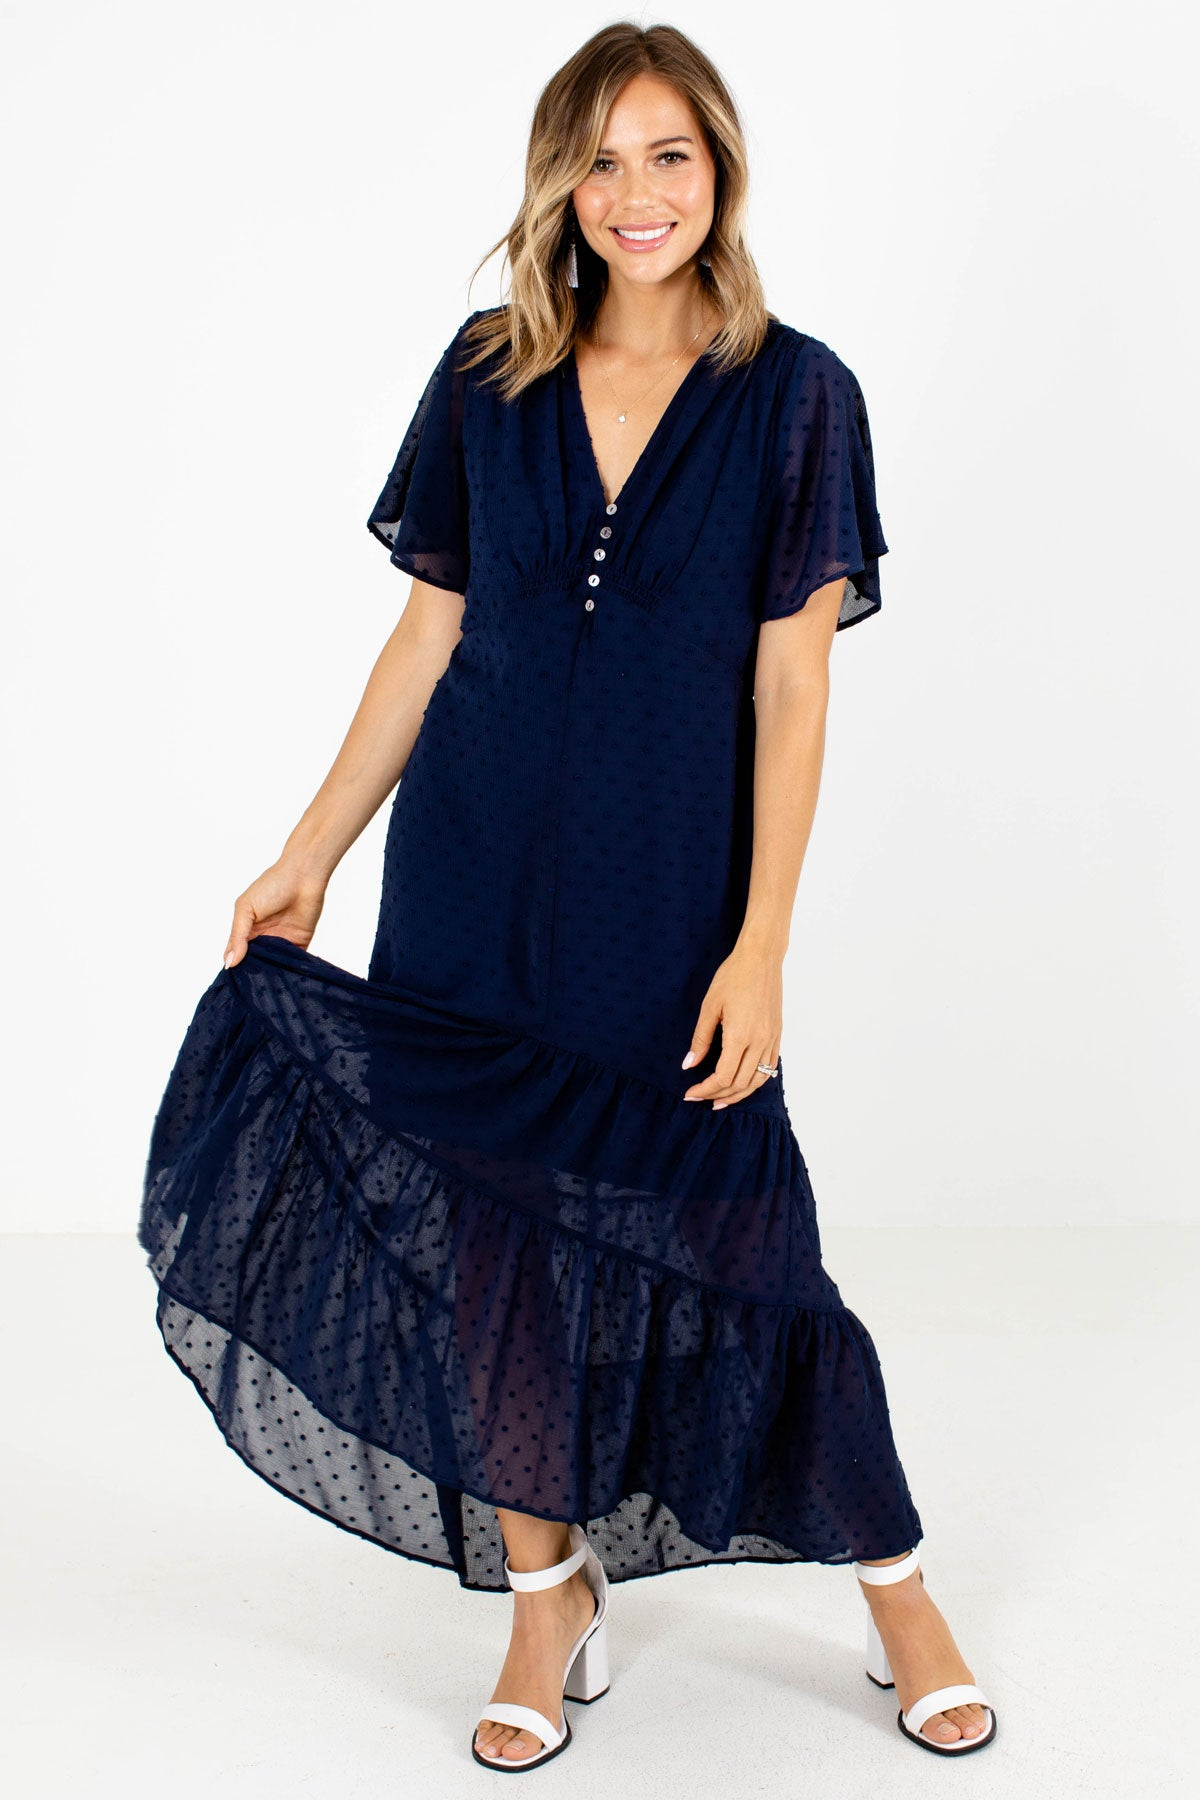 Navy Blue Swiss Dot Boutique Maxi Dresses for Women